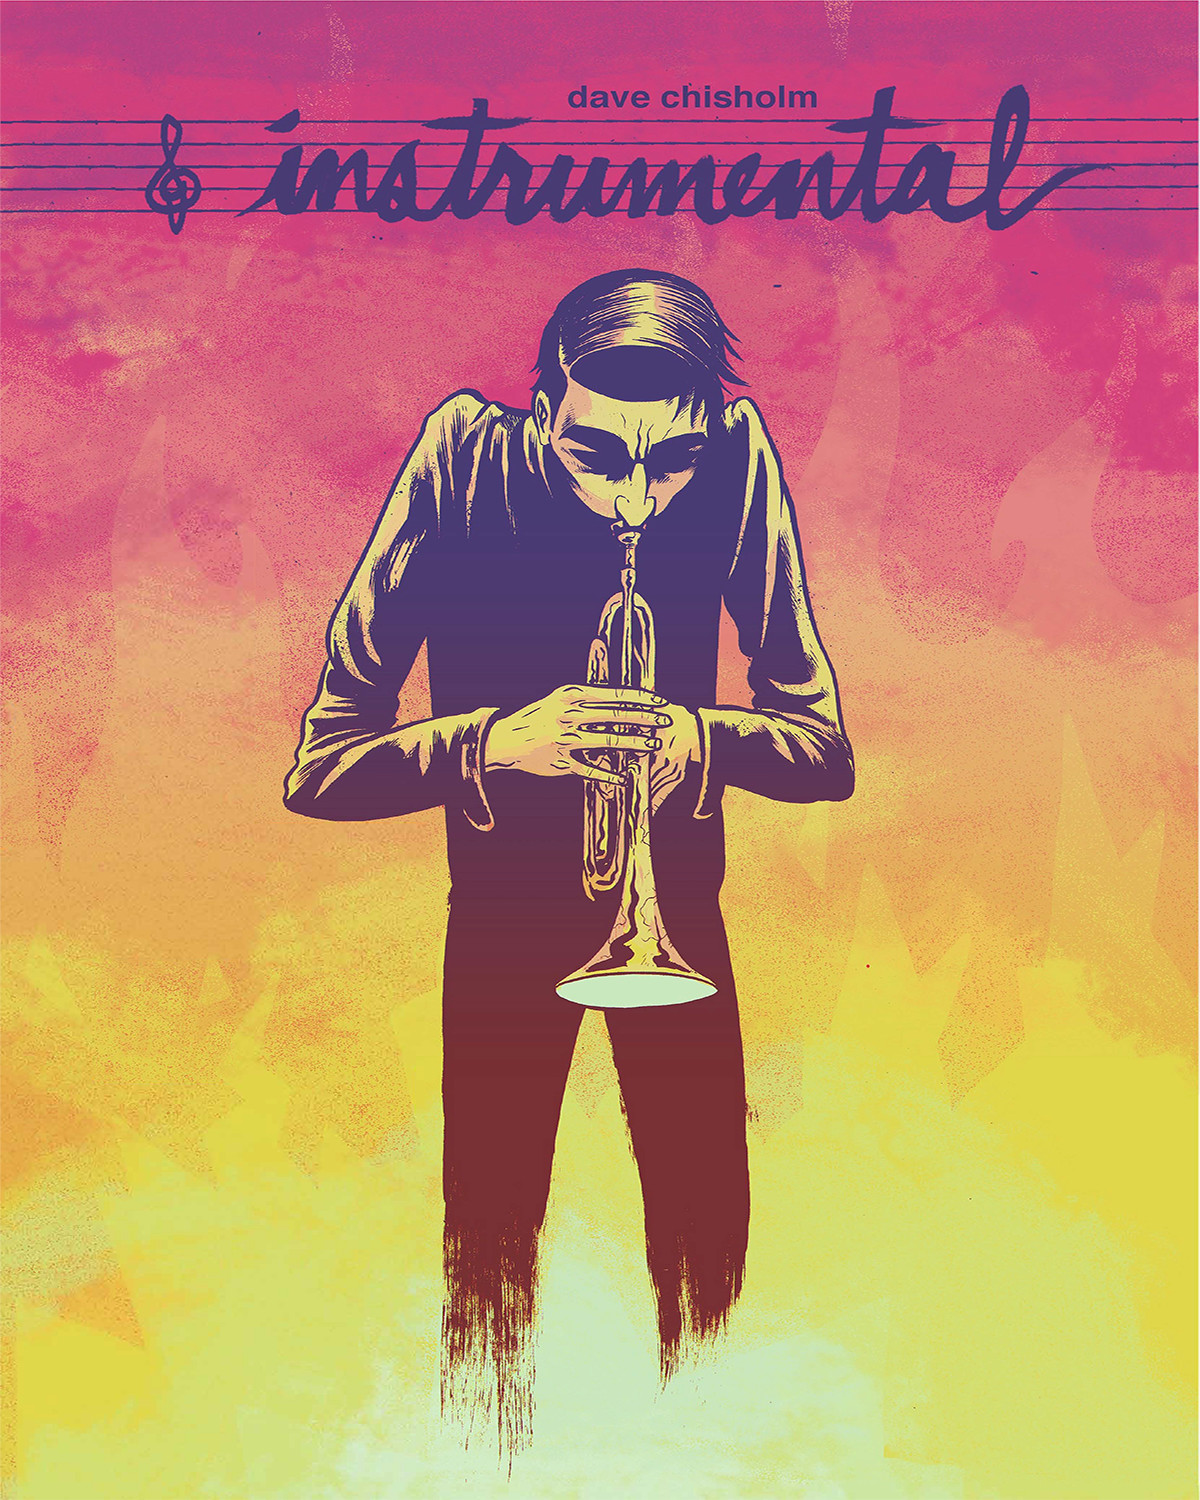 Instrumental: By Dave Chisholm    Tom is a solid, but not great, musician. While his bandmates are happy to play gigs for themselves at their own clubs, drinking free beer and shooting the breeze, Tom aches for the next level, whatever that is. And as musicians are wont to do in magical fables, he meets a mysterious stranger with a seemingly simple offer: take a battered old trumpet for free, and just enjoy it, no exchanges and no strings. Whenever Tom plays it, the extraordinary music blows away his growing throngs of fans, and deadly mishaps start to follow. Tom may not have sold his soul for the music of the heavens, but he seems to have bargained away something much more serious.  Comes with an original downloadable LP of music by Chisholm.